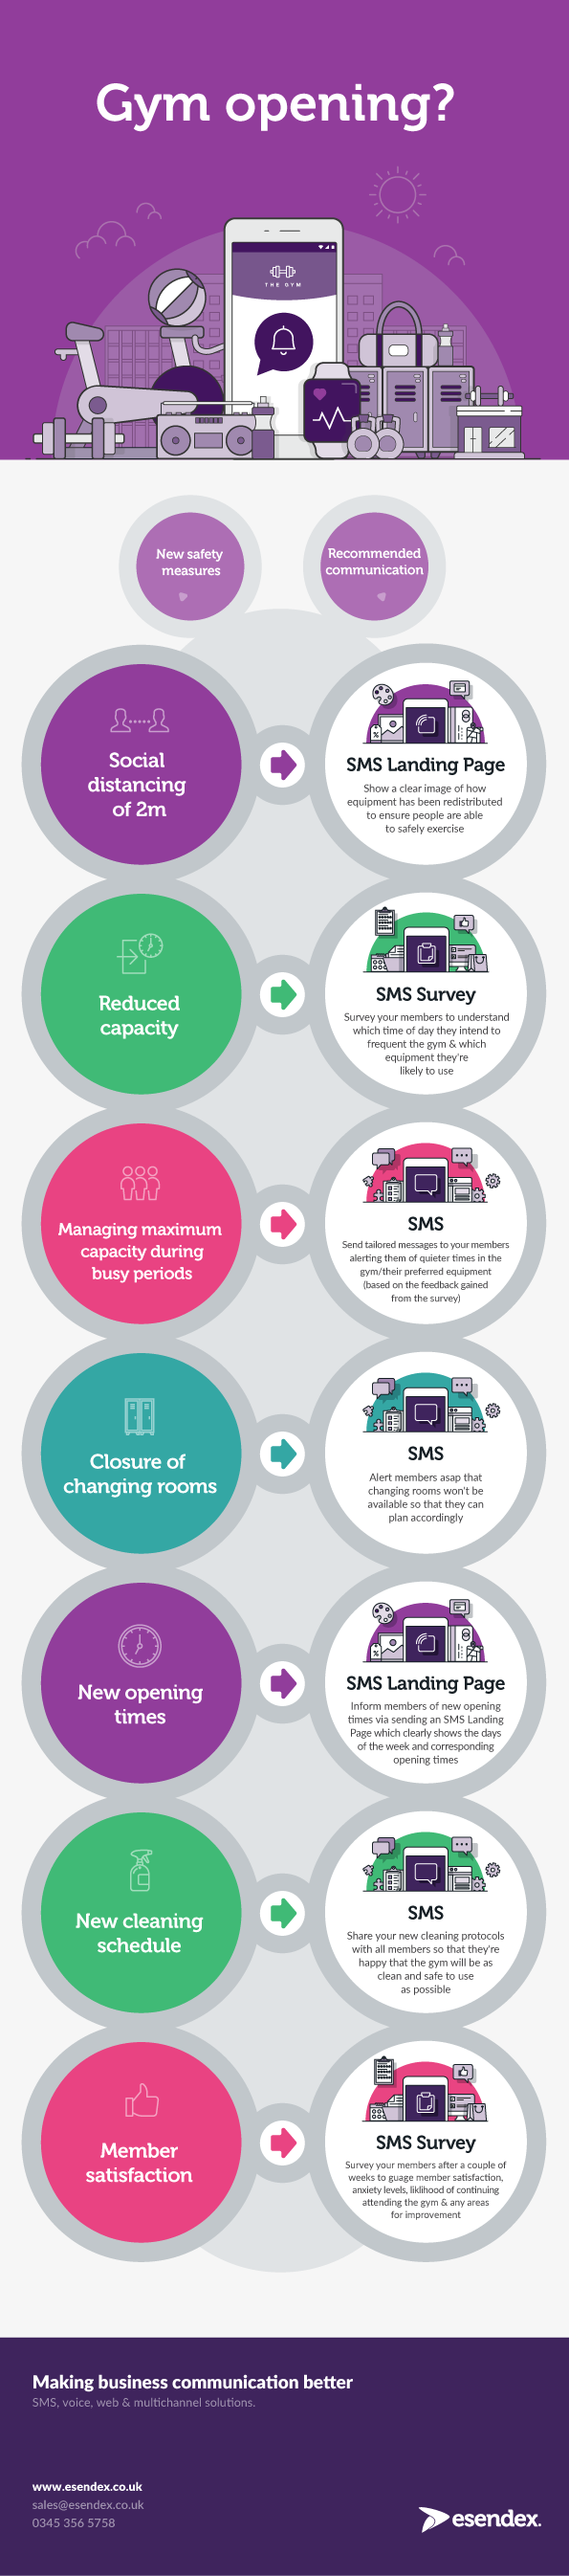 Esendex infographic, showing how SMS can be used to help fitness businesses adhere to government guidelines and communicate with customers post-lockdown